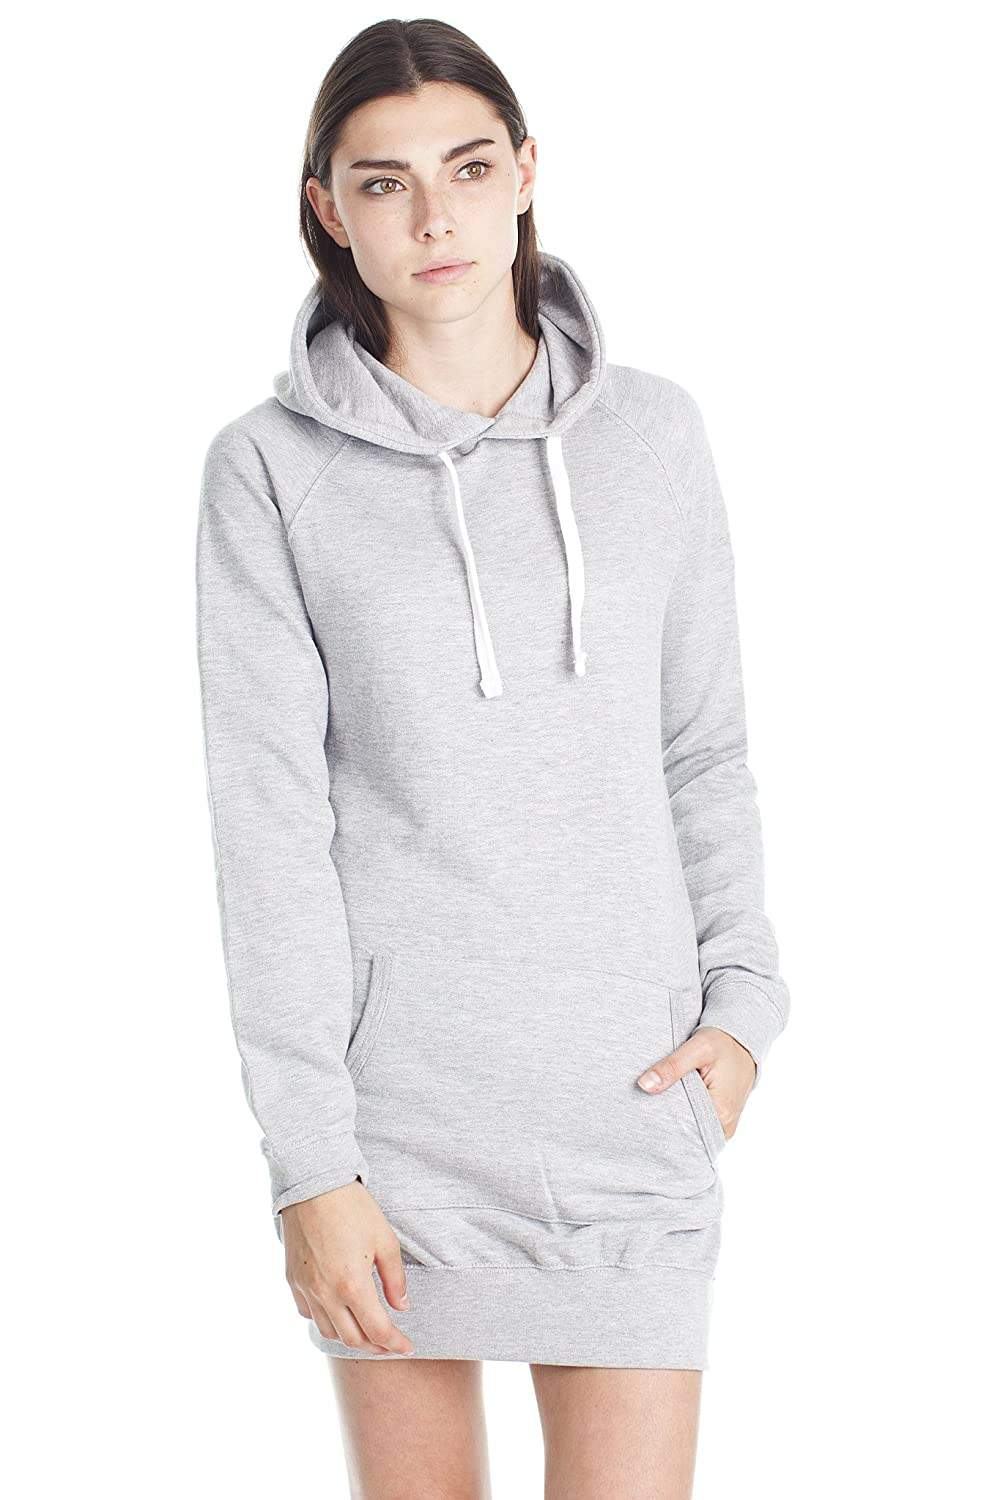 193d6ffb5ddc7 DESIGN: French terry hooded long tunic dress with kangaroo front pockets,  double layer hood and ribbed cuffs.